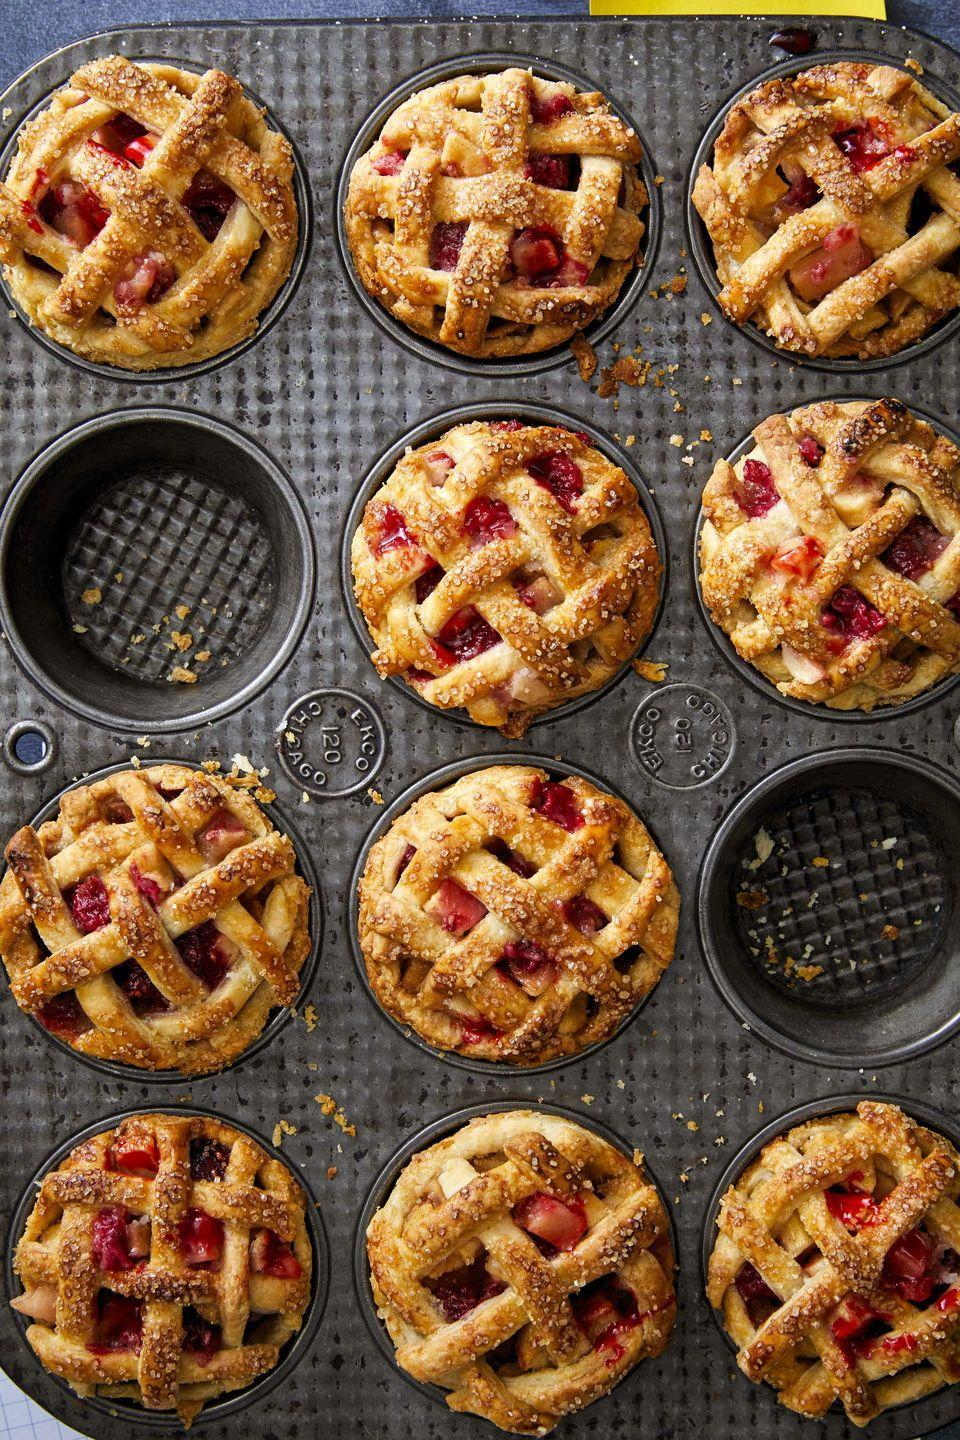 """<p>Treat guests to the perfect bite-size after-dinner treat with these gorgeous little single-serving pies.</p><p><strong><a href=""""https://www.countryliving.com/food-drinks/a33553885/mini-apple-and-raspberry-pies/"""" rel=""""nofollow noopener"""" target=""""_blank"""" data-ylk=""""slk:Get the recipe"""" class=""""link rapid-noclick-resp"""">Get the recipe</a>.</strong> </p>"""